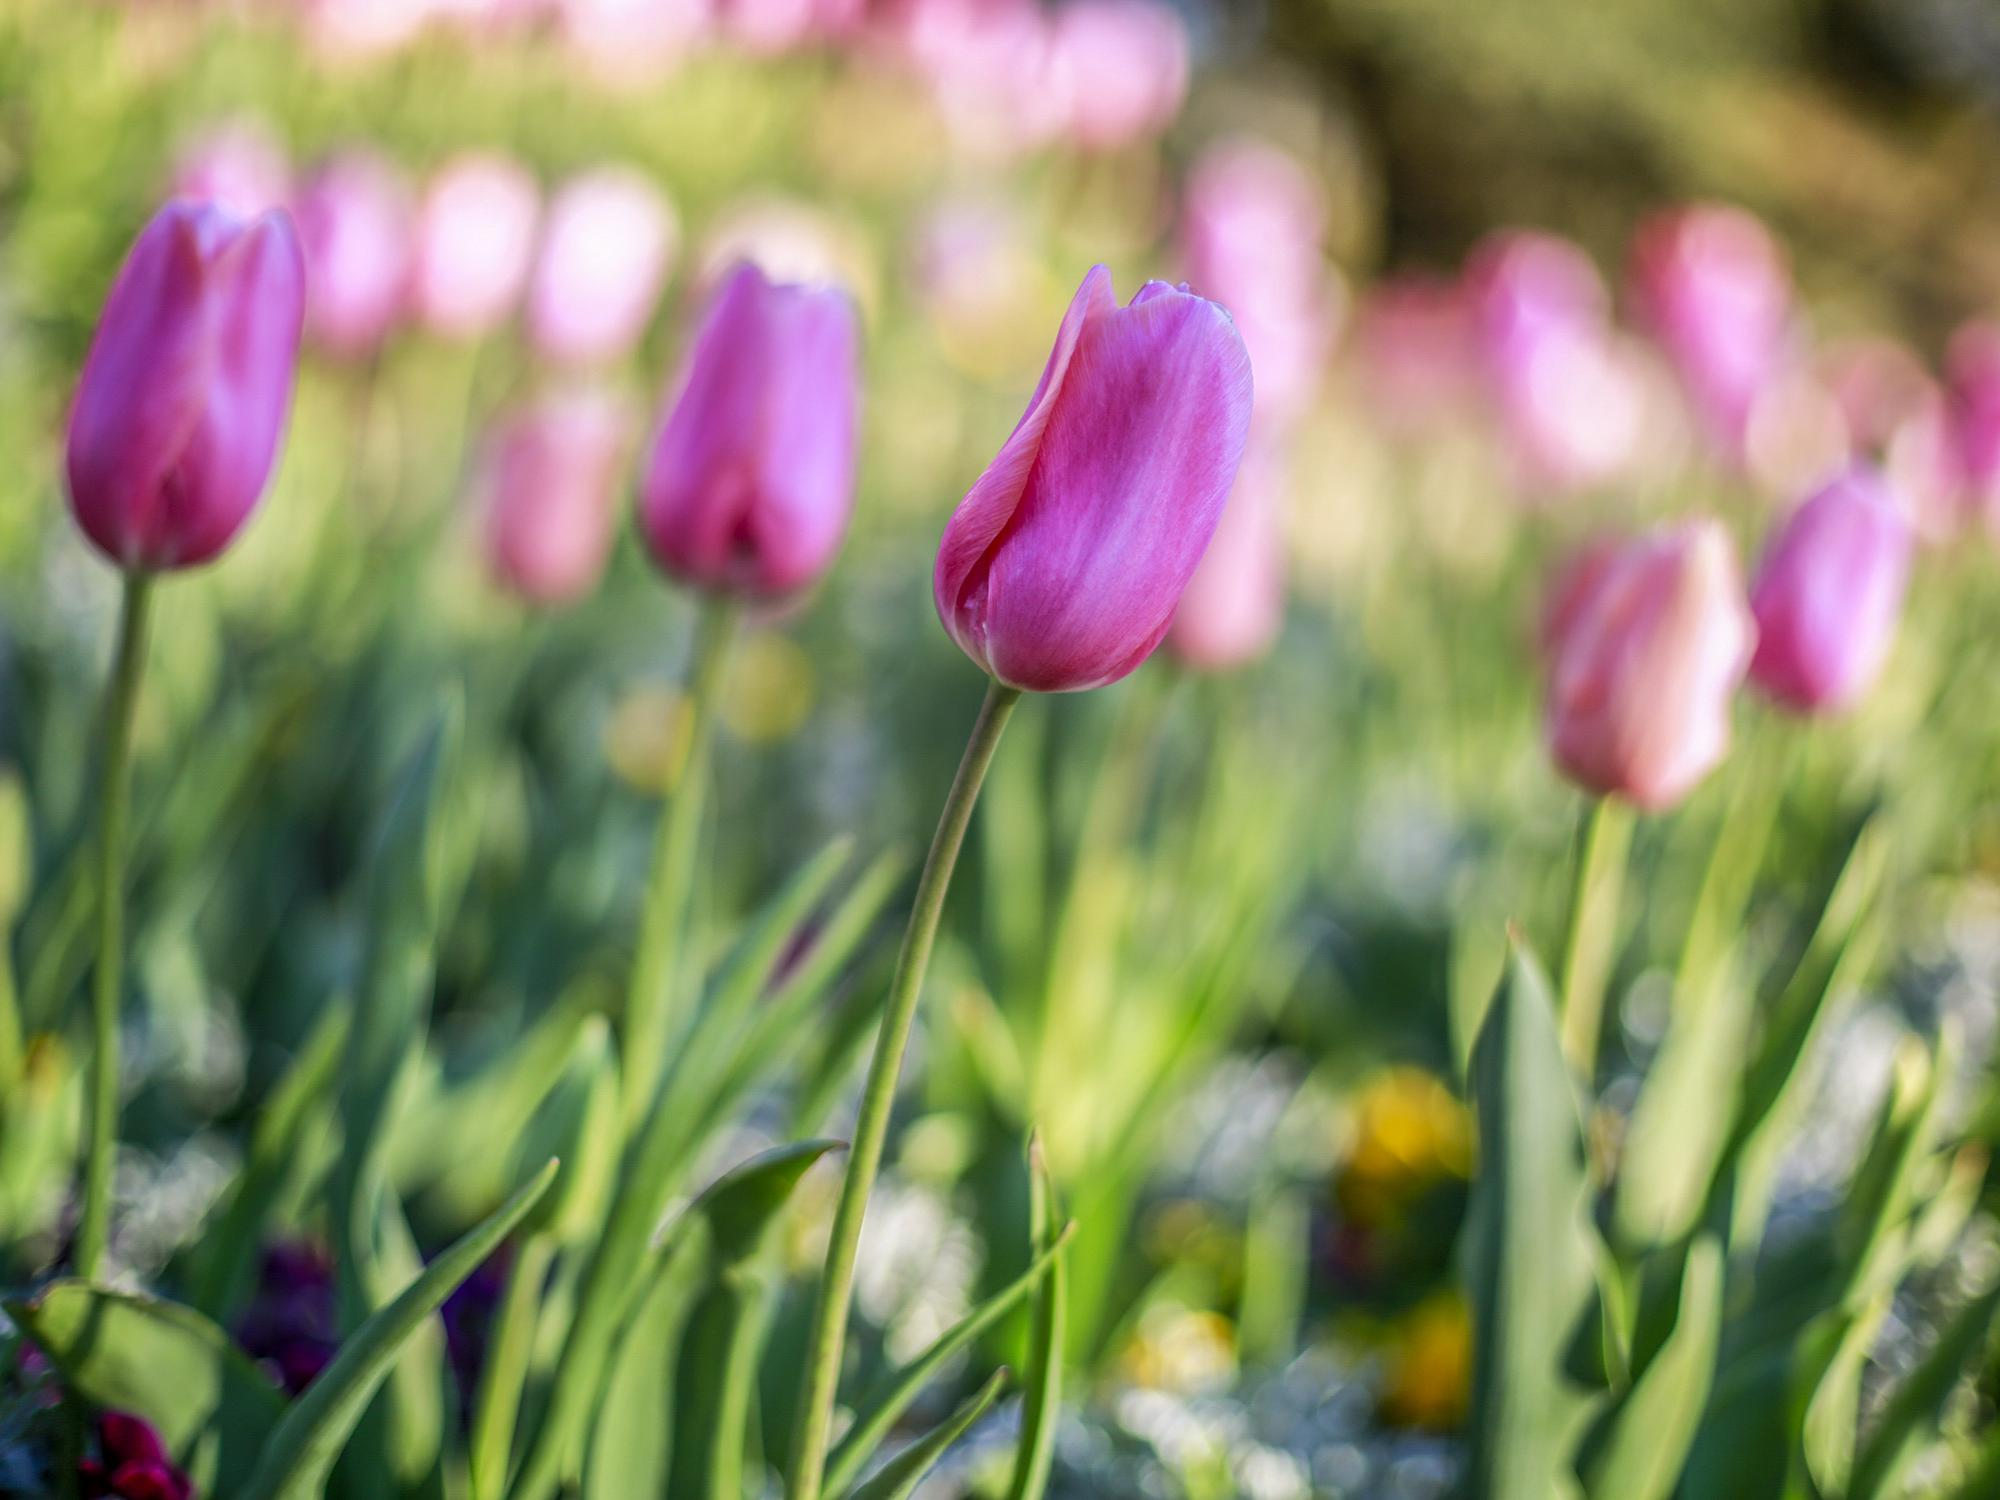 A picture of several pink tulips with one in focus and others blurred in the background.